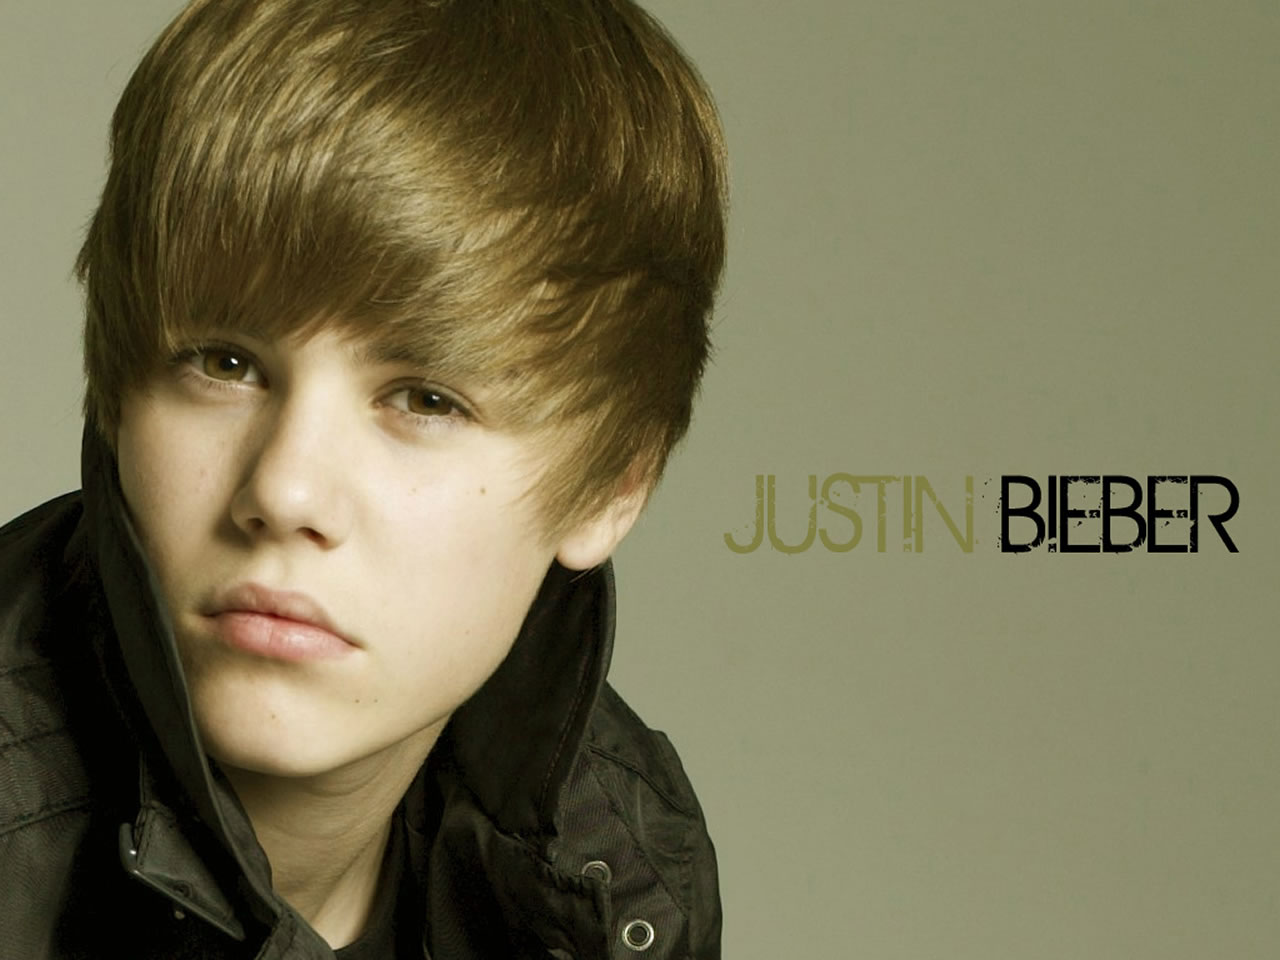 pics photos justin bieber - photo #44